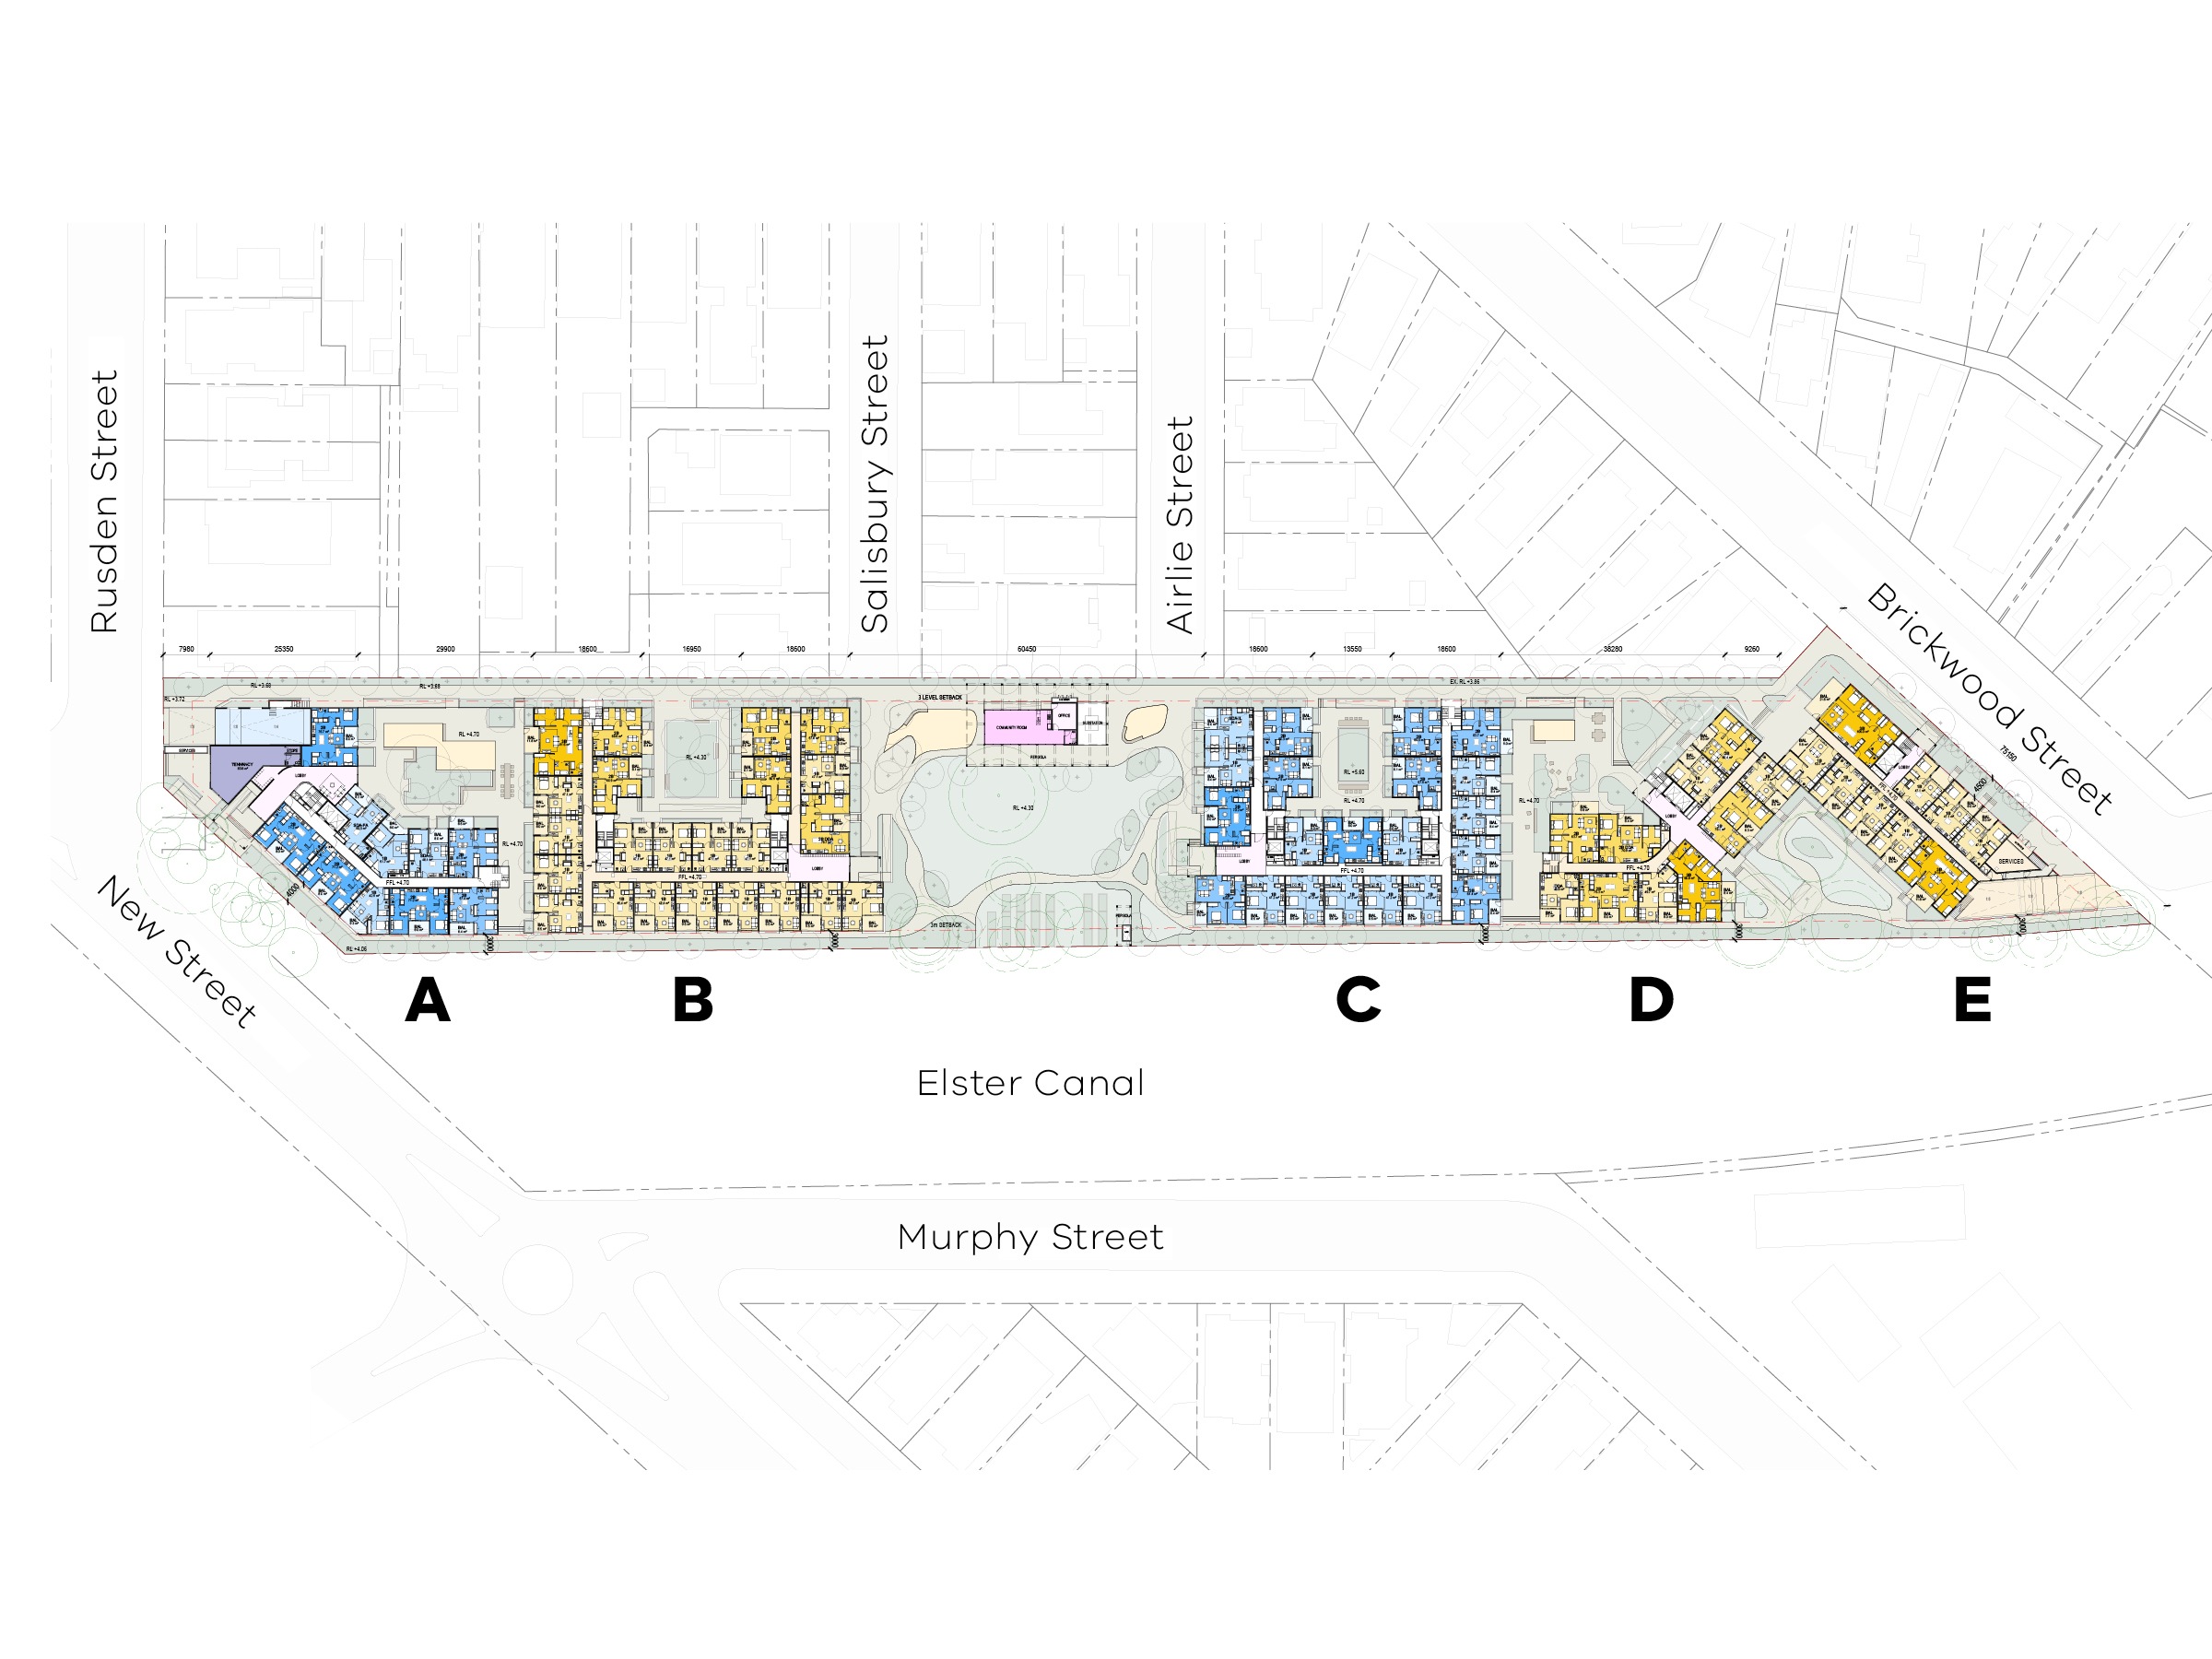 Diagram showing the different types of dwellings and spaces in the new development.